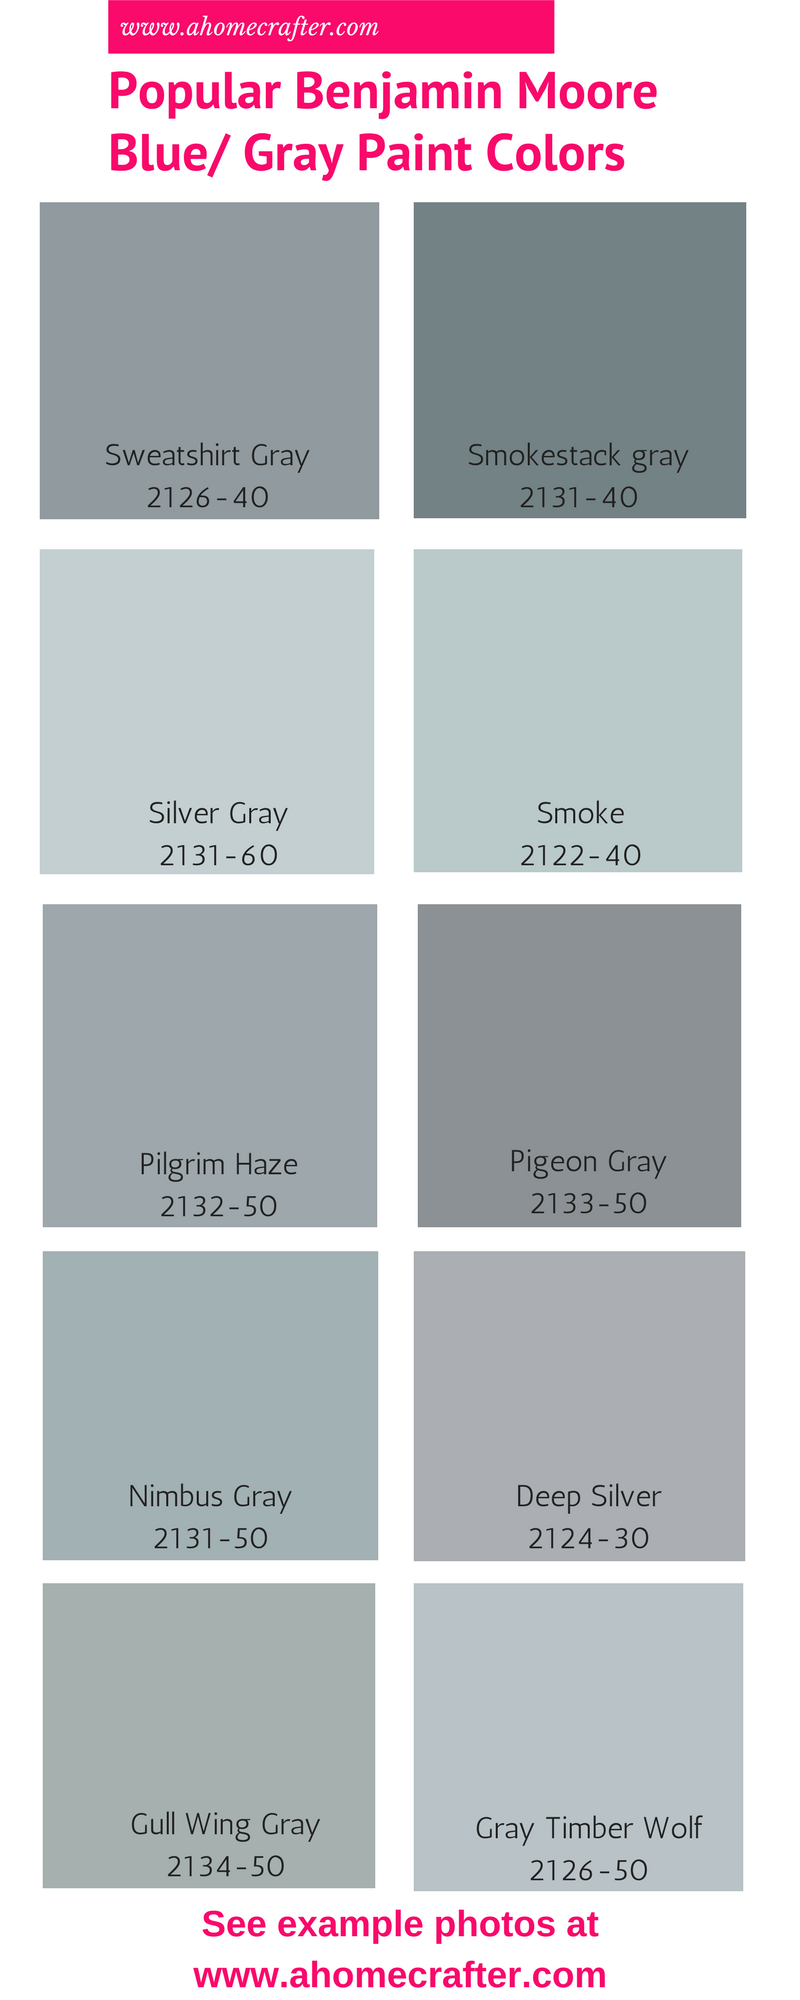 Popular Benjamin Moore Blue Gray Paint Colors With Images Blue